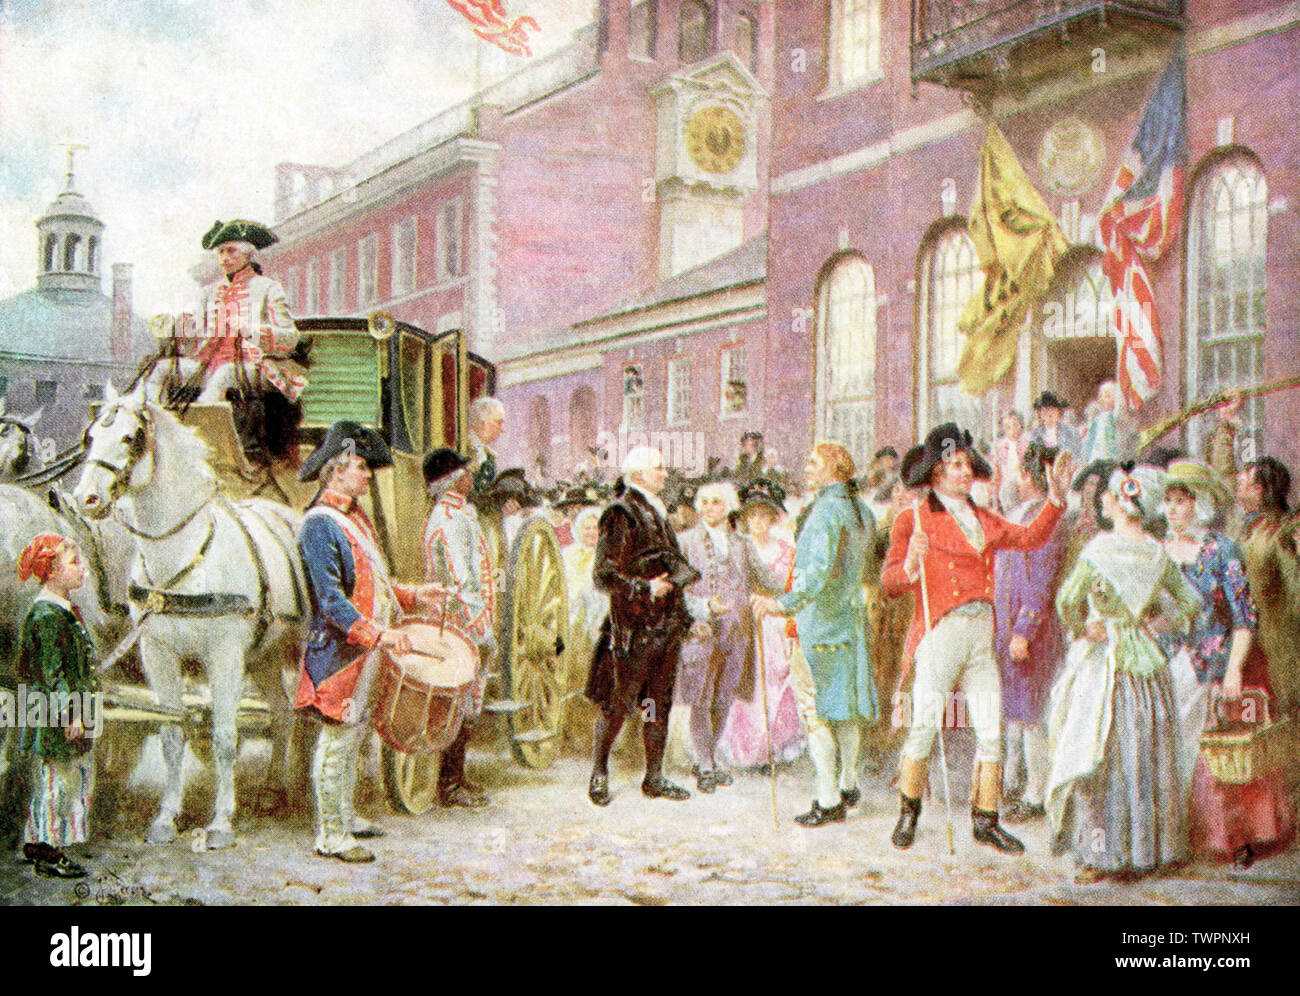 e1d14d724039 This painting of George Washington's Second Inauguration (March 4, 1793) is  by J.G.